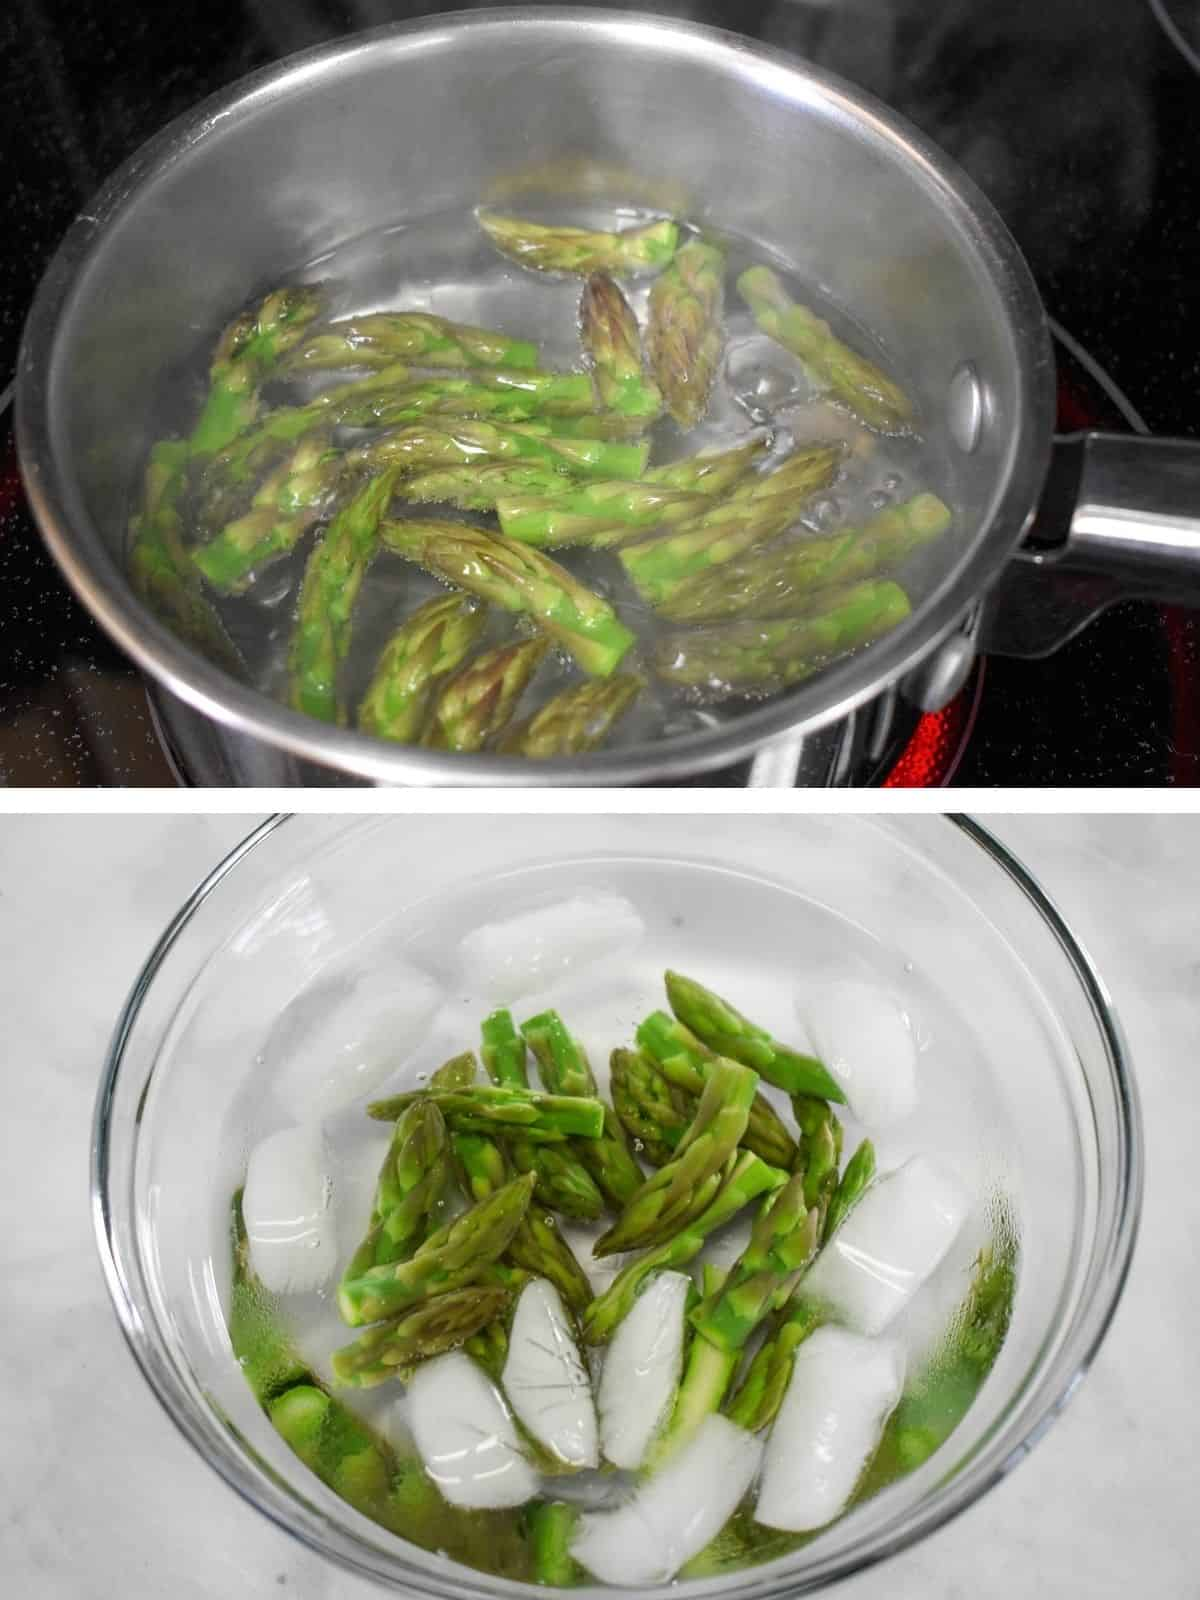 A collage showing two images, the top one is asparagus tips boiling in a small saucepan. The bottom one is the asparagus tips in a bowl of ice water.